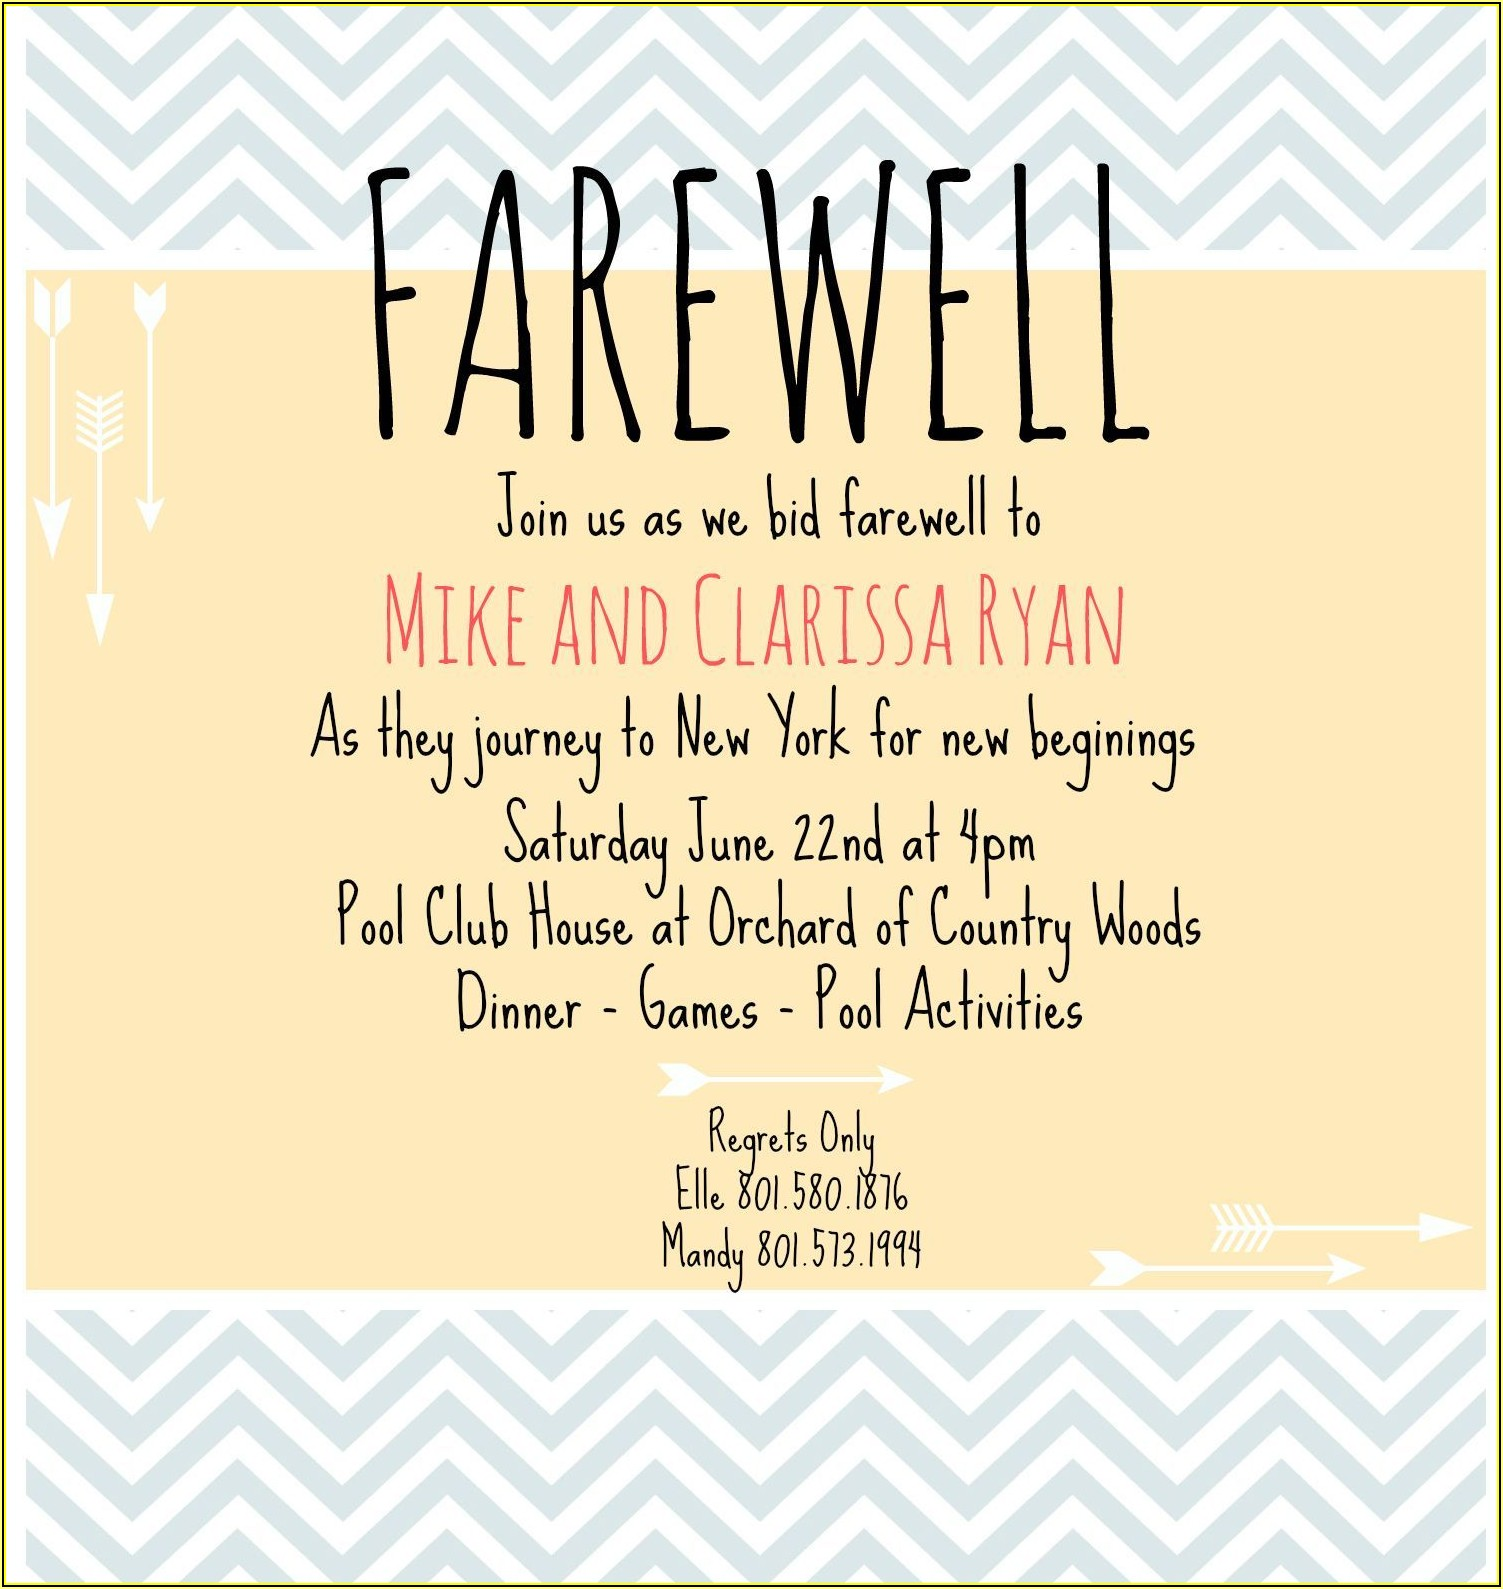 Free Farewell Dinner Invitation Template